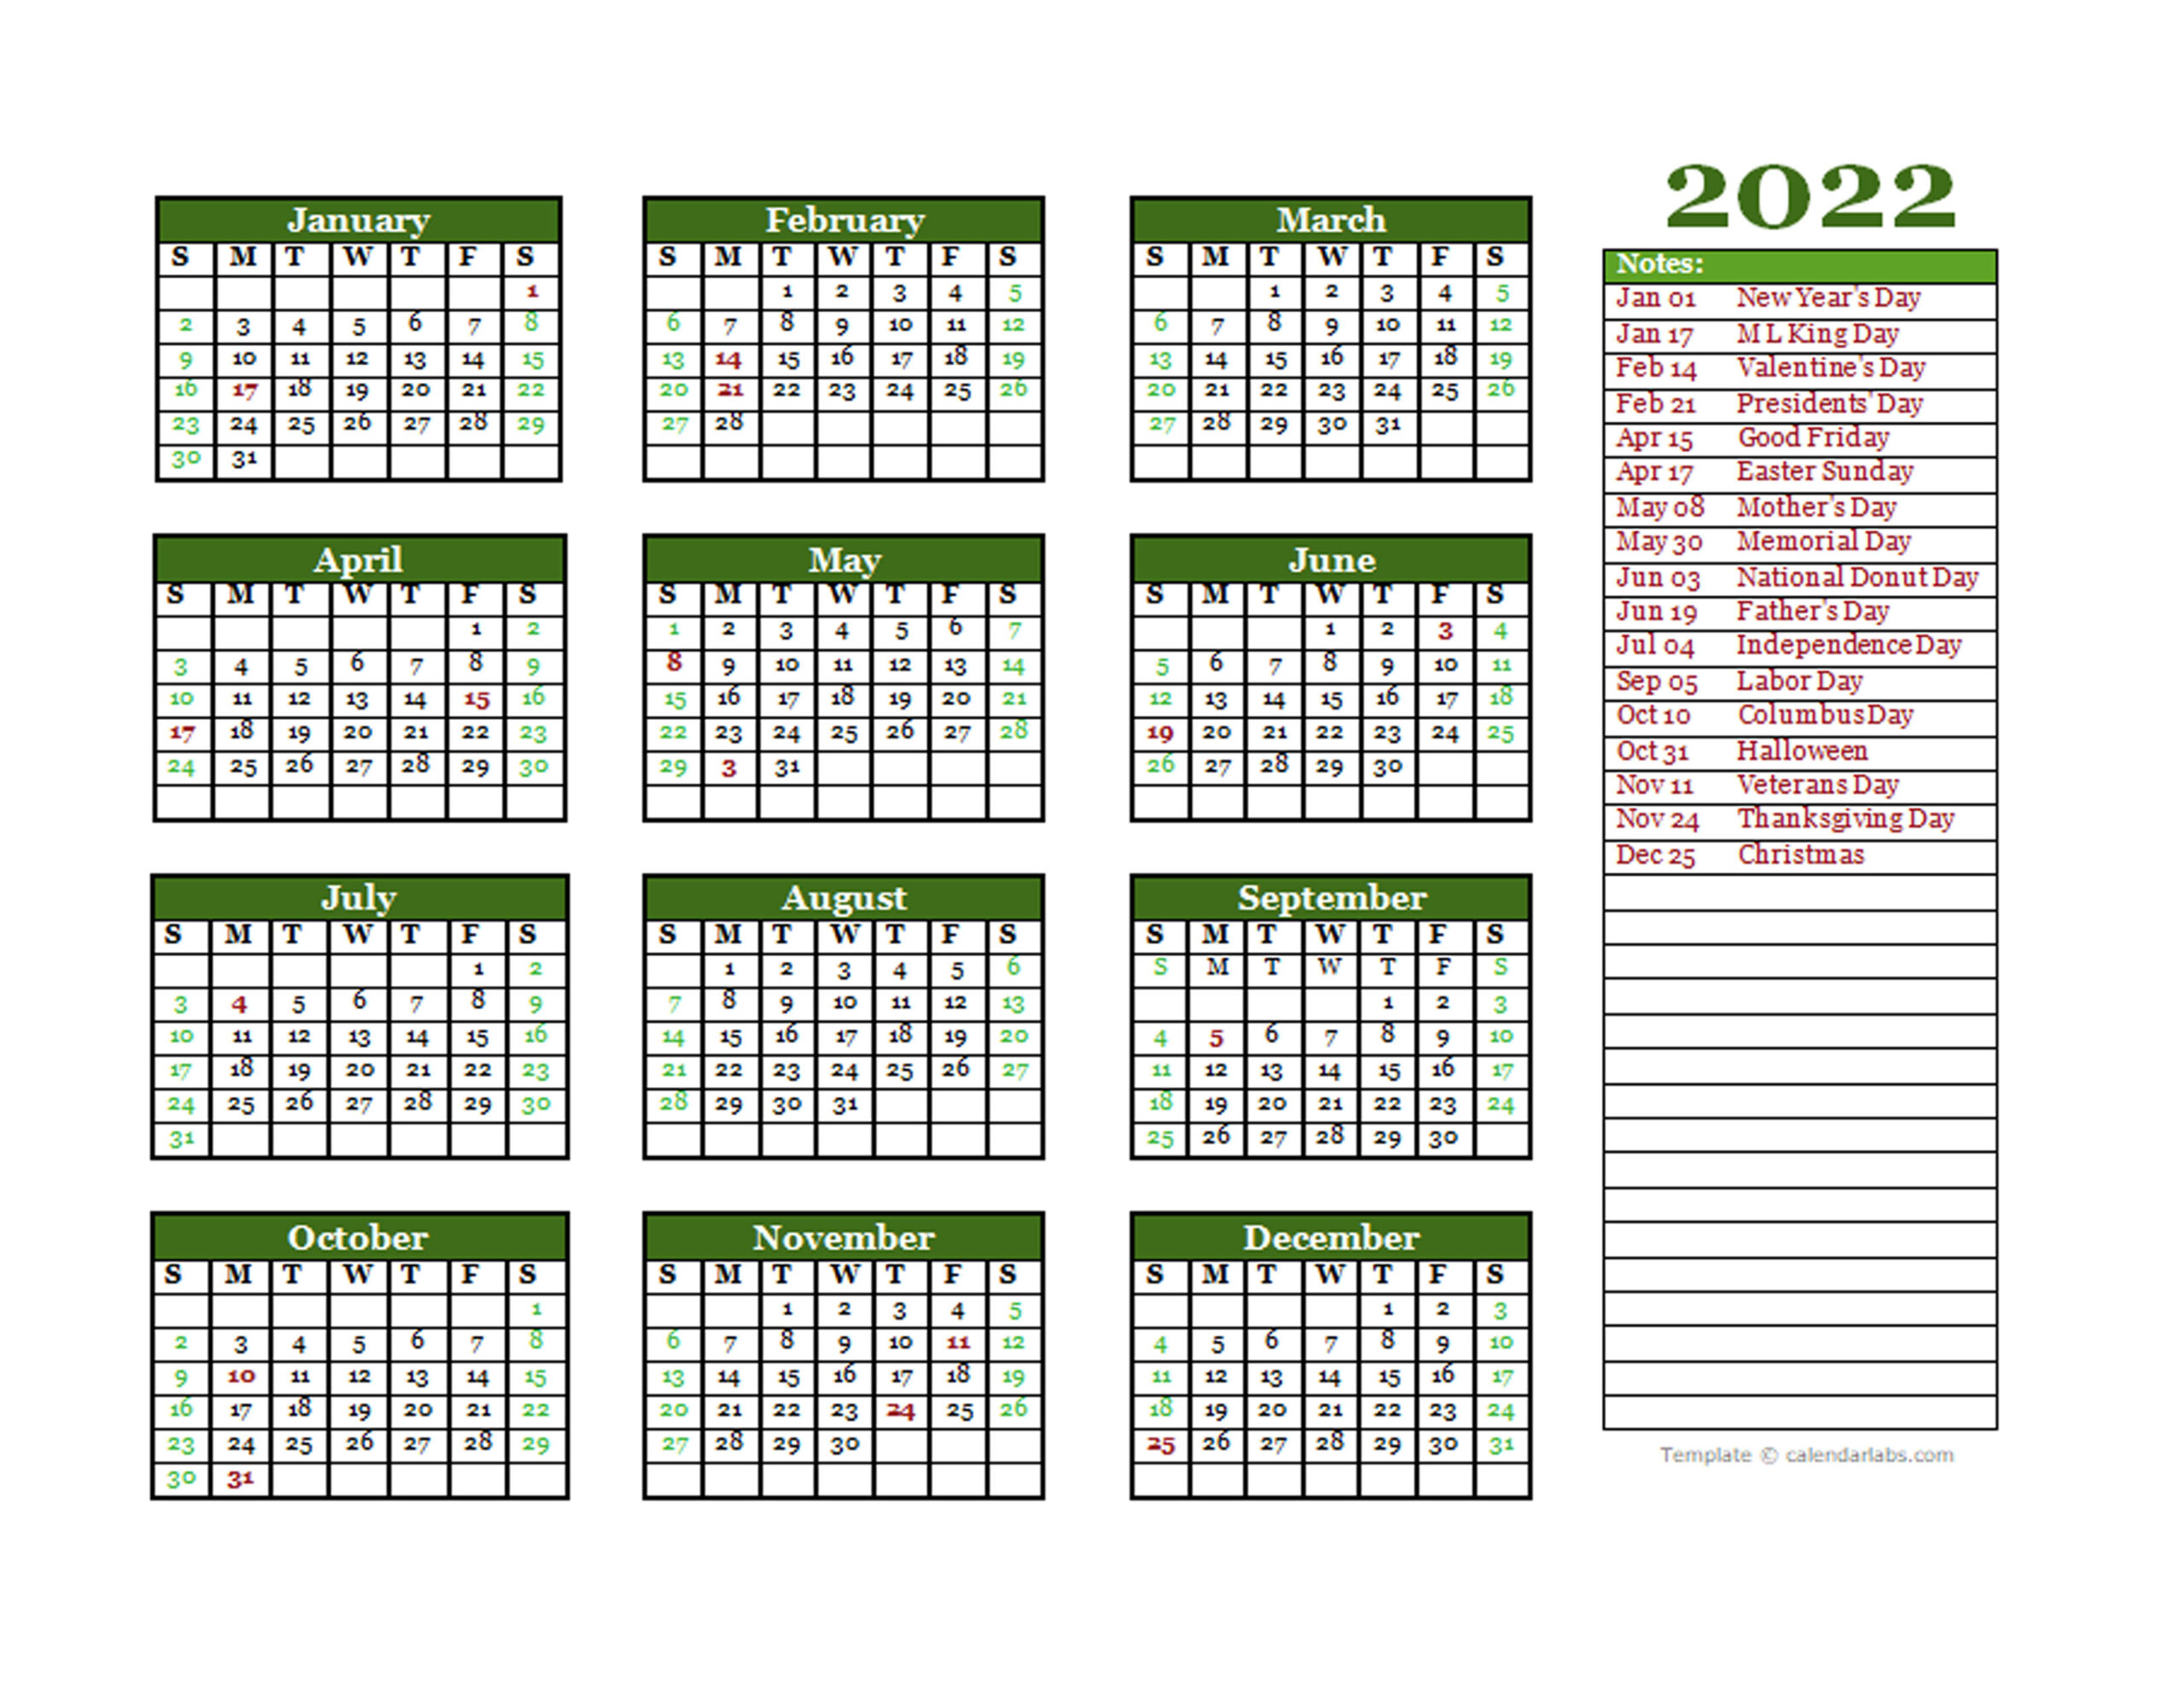 Editable 2022 Yearly Calendar Landscape - Free Printable with Yearly Julian Calendar 2022